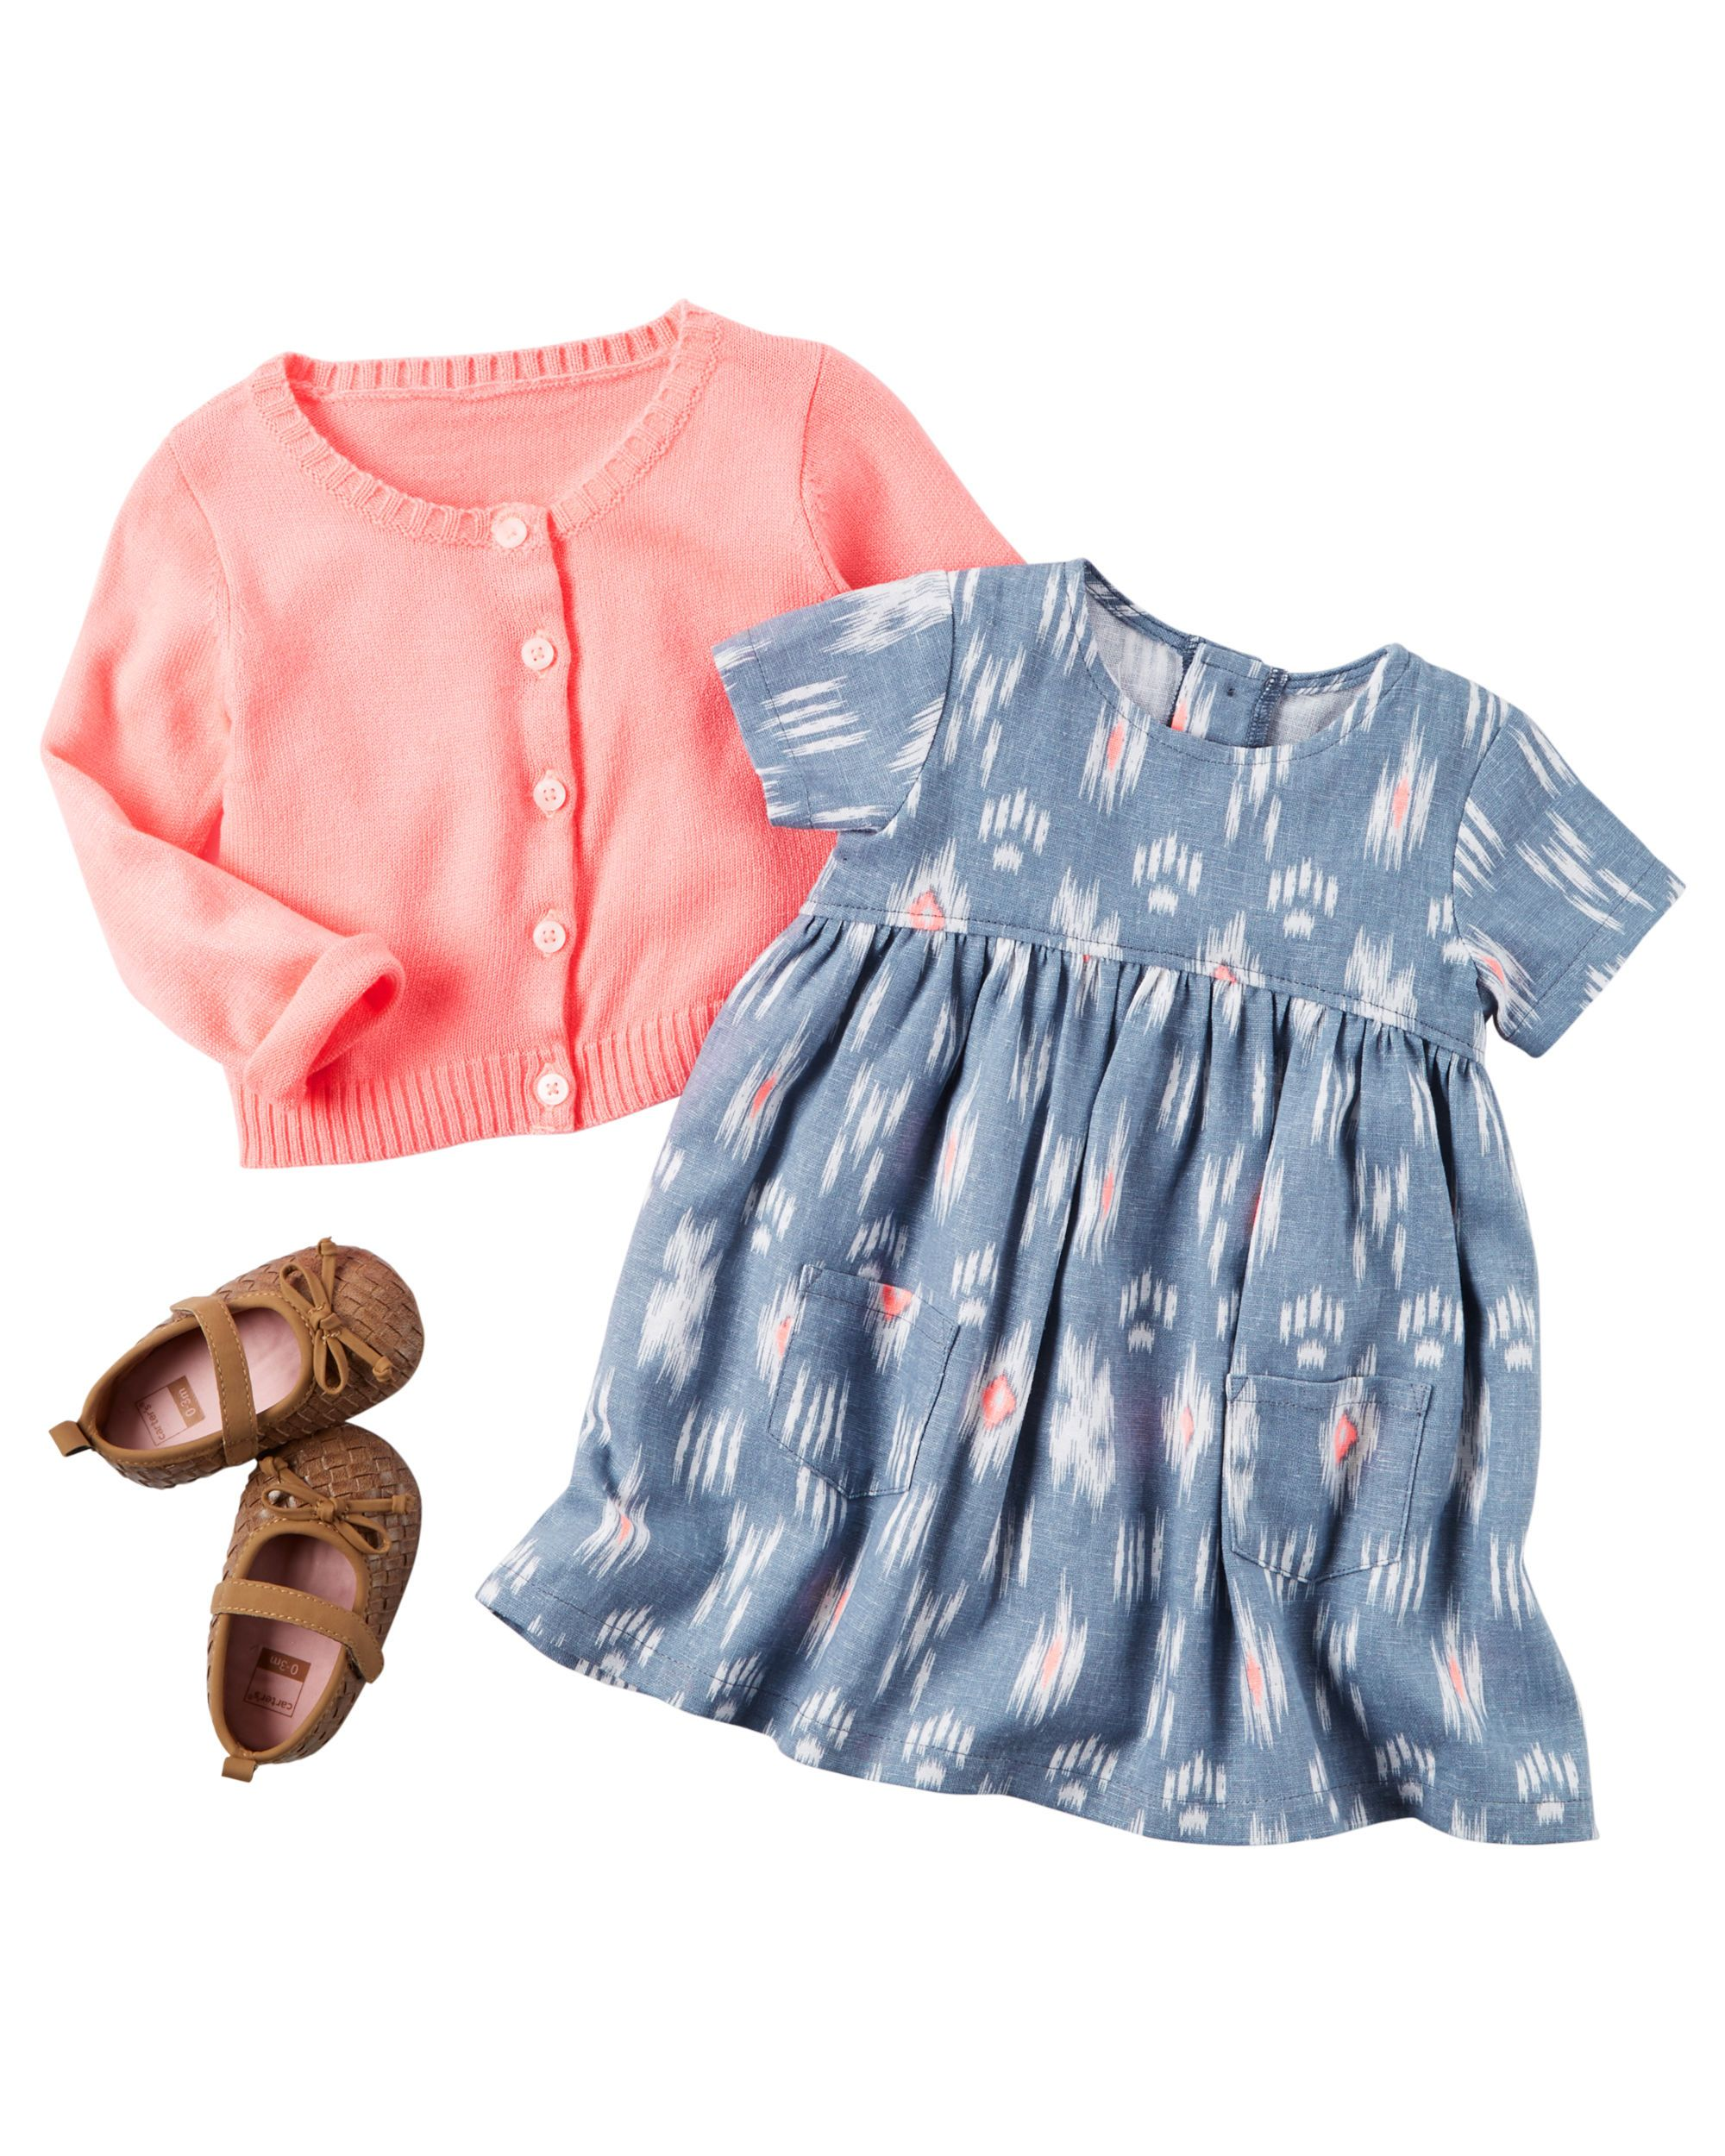 ee0431323 Featuring a fun geo print dress and a cozy cardigan, this sweet 2-piece set  takes her from sunny days to breezy nights.